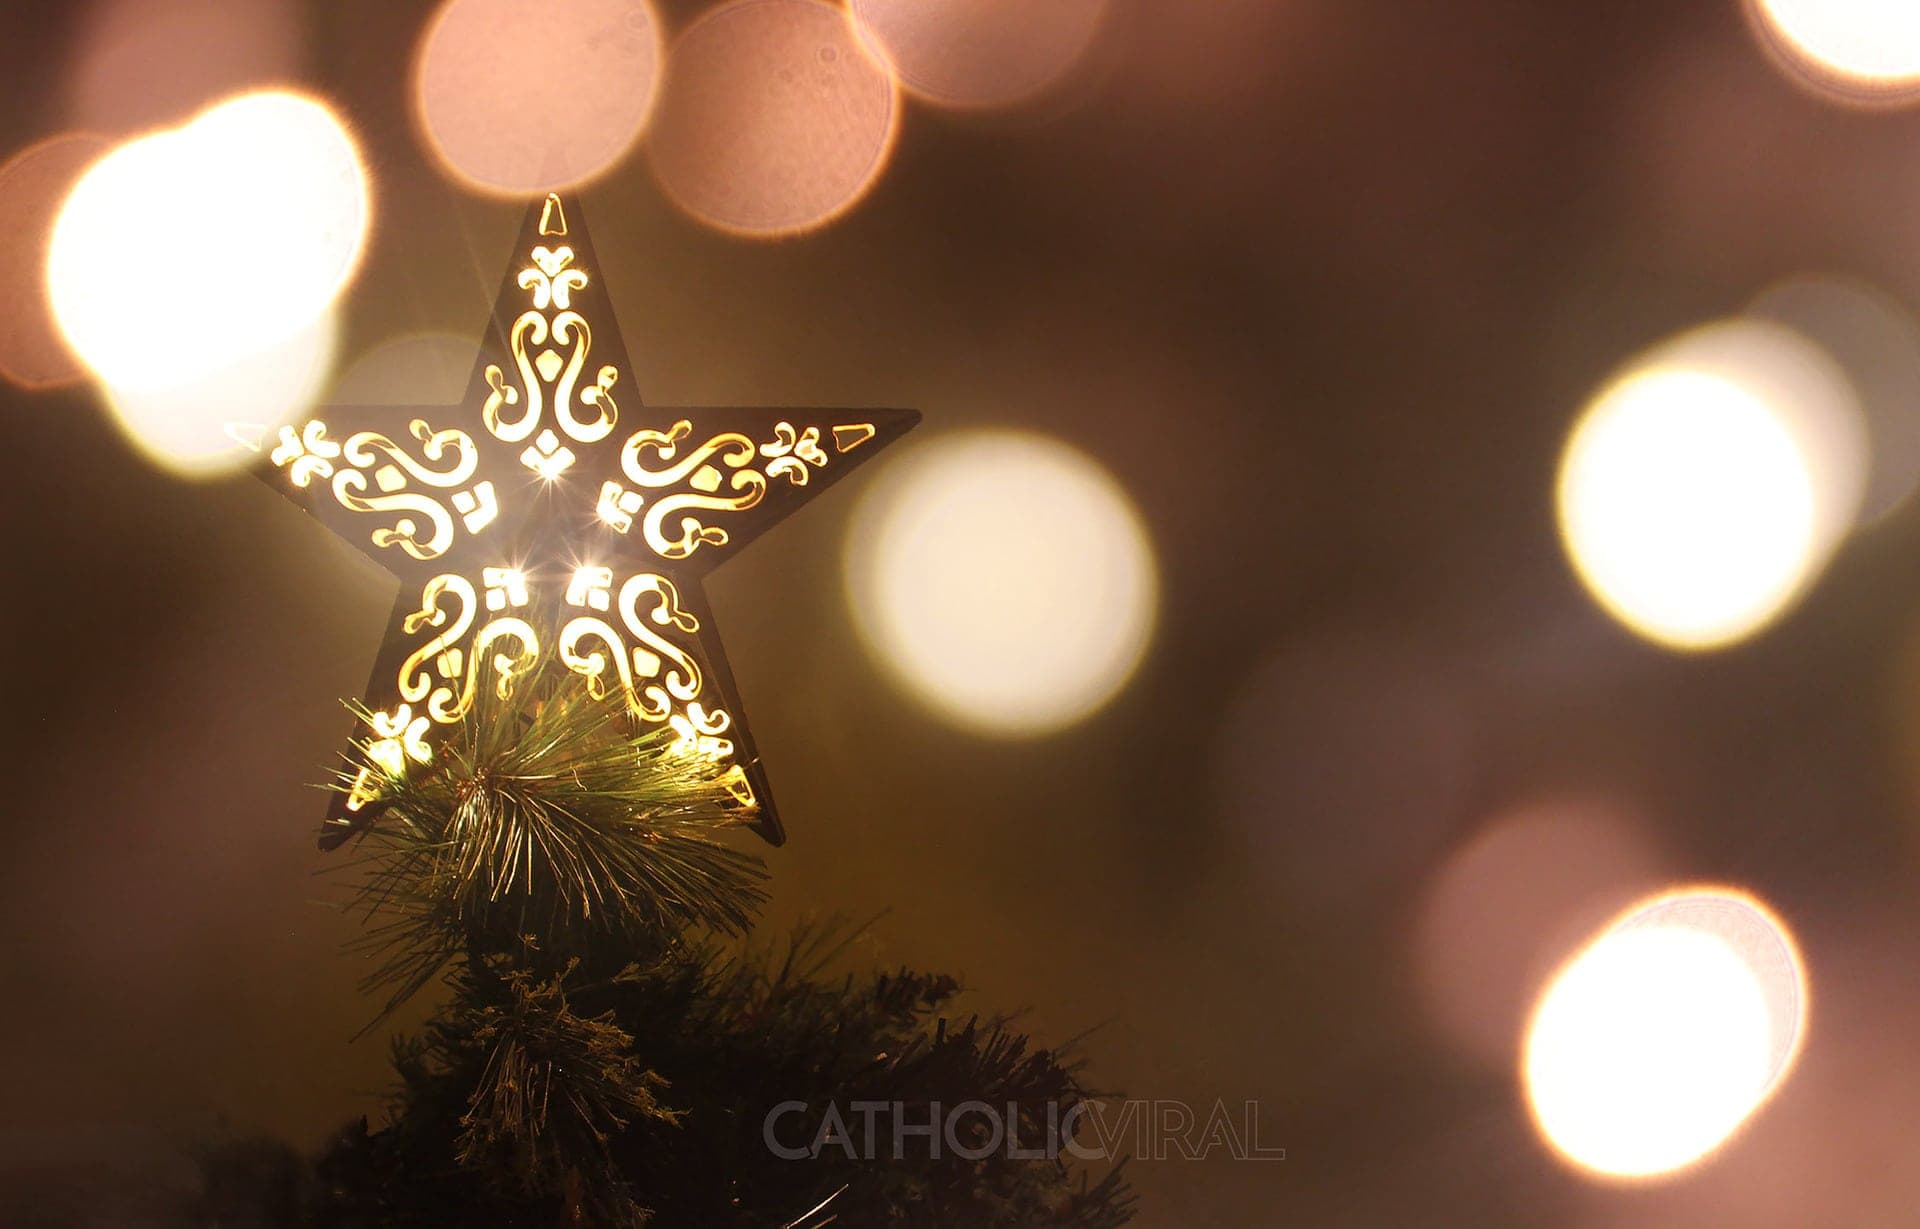 27 Christmas Season Celebration Photographs Hd Christmas